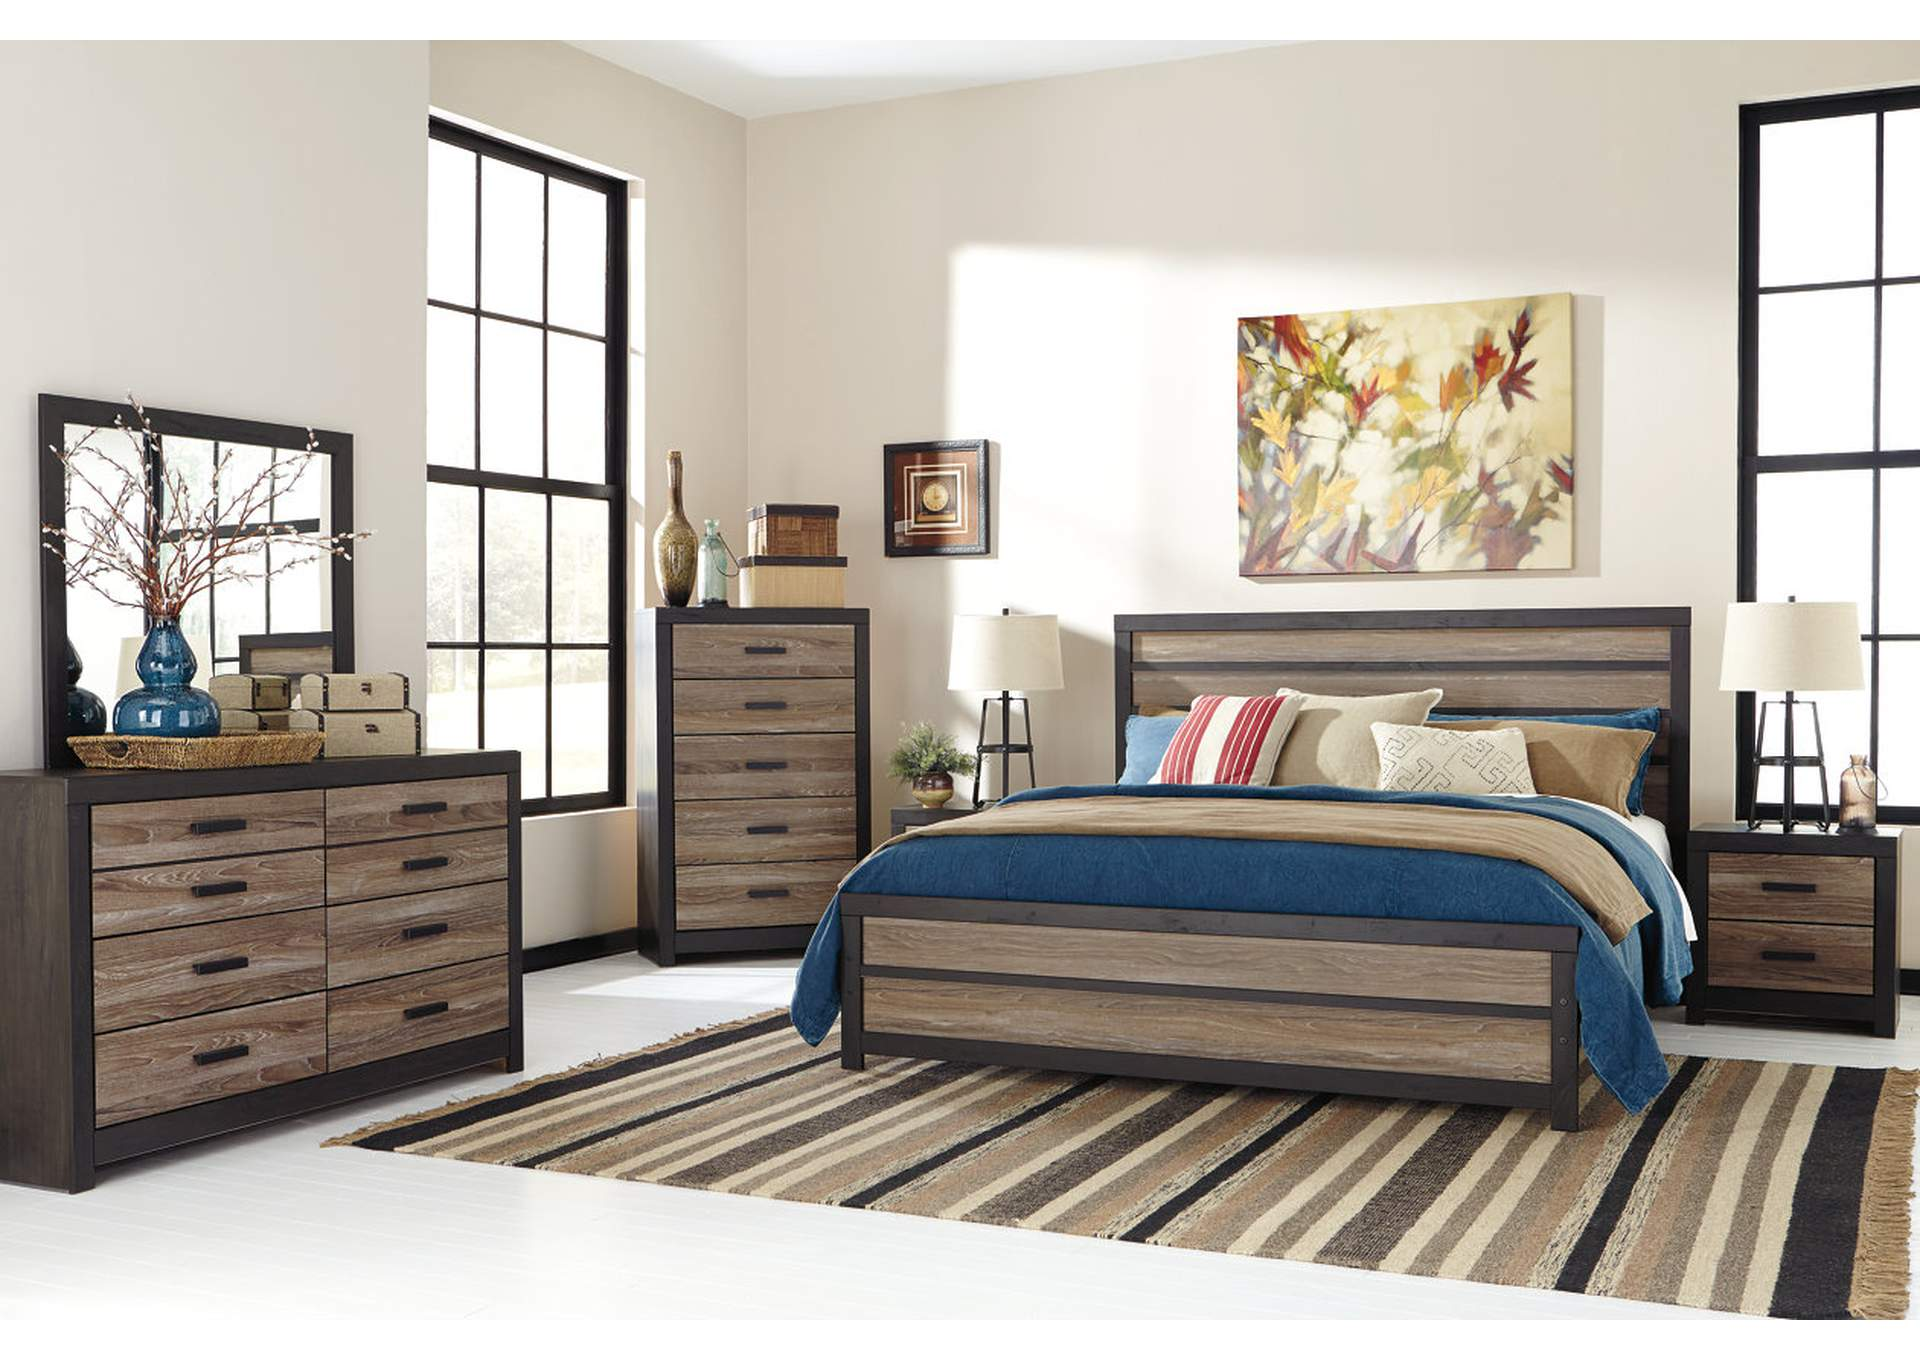 Harlinton Queen Panel Bed, Dresser & Mirror,Signature Design By Ashley